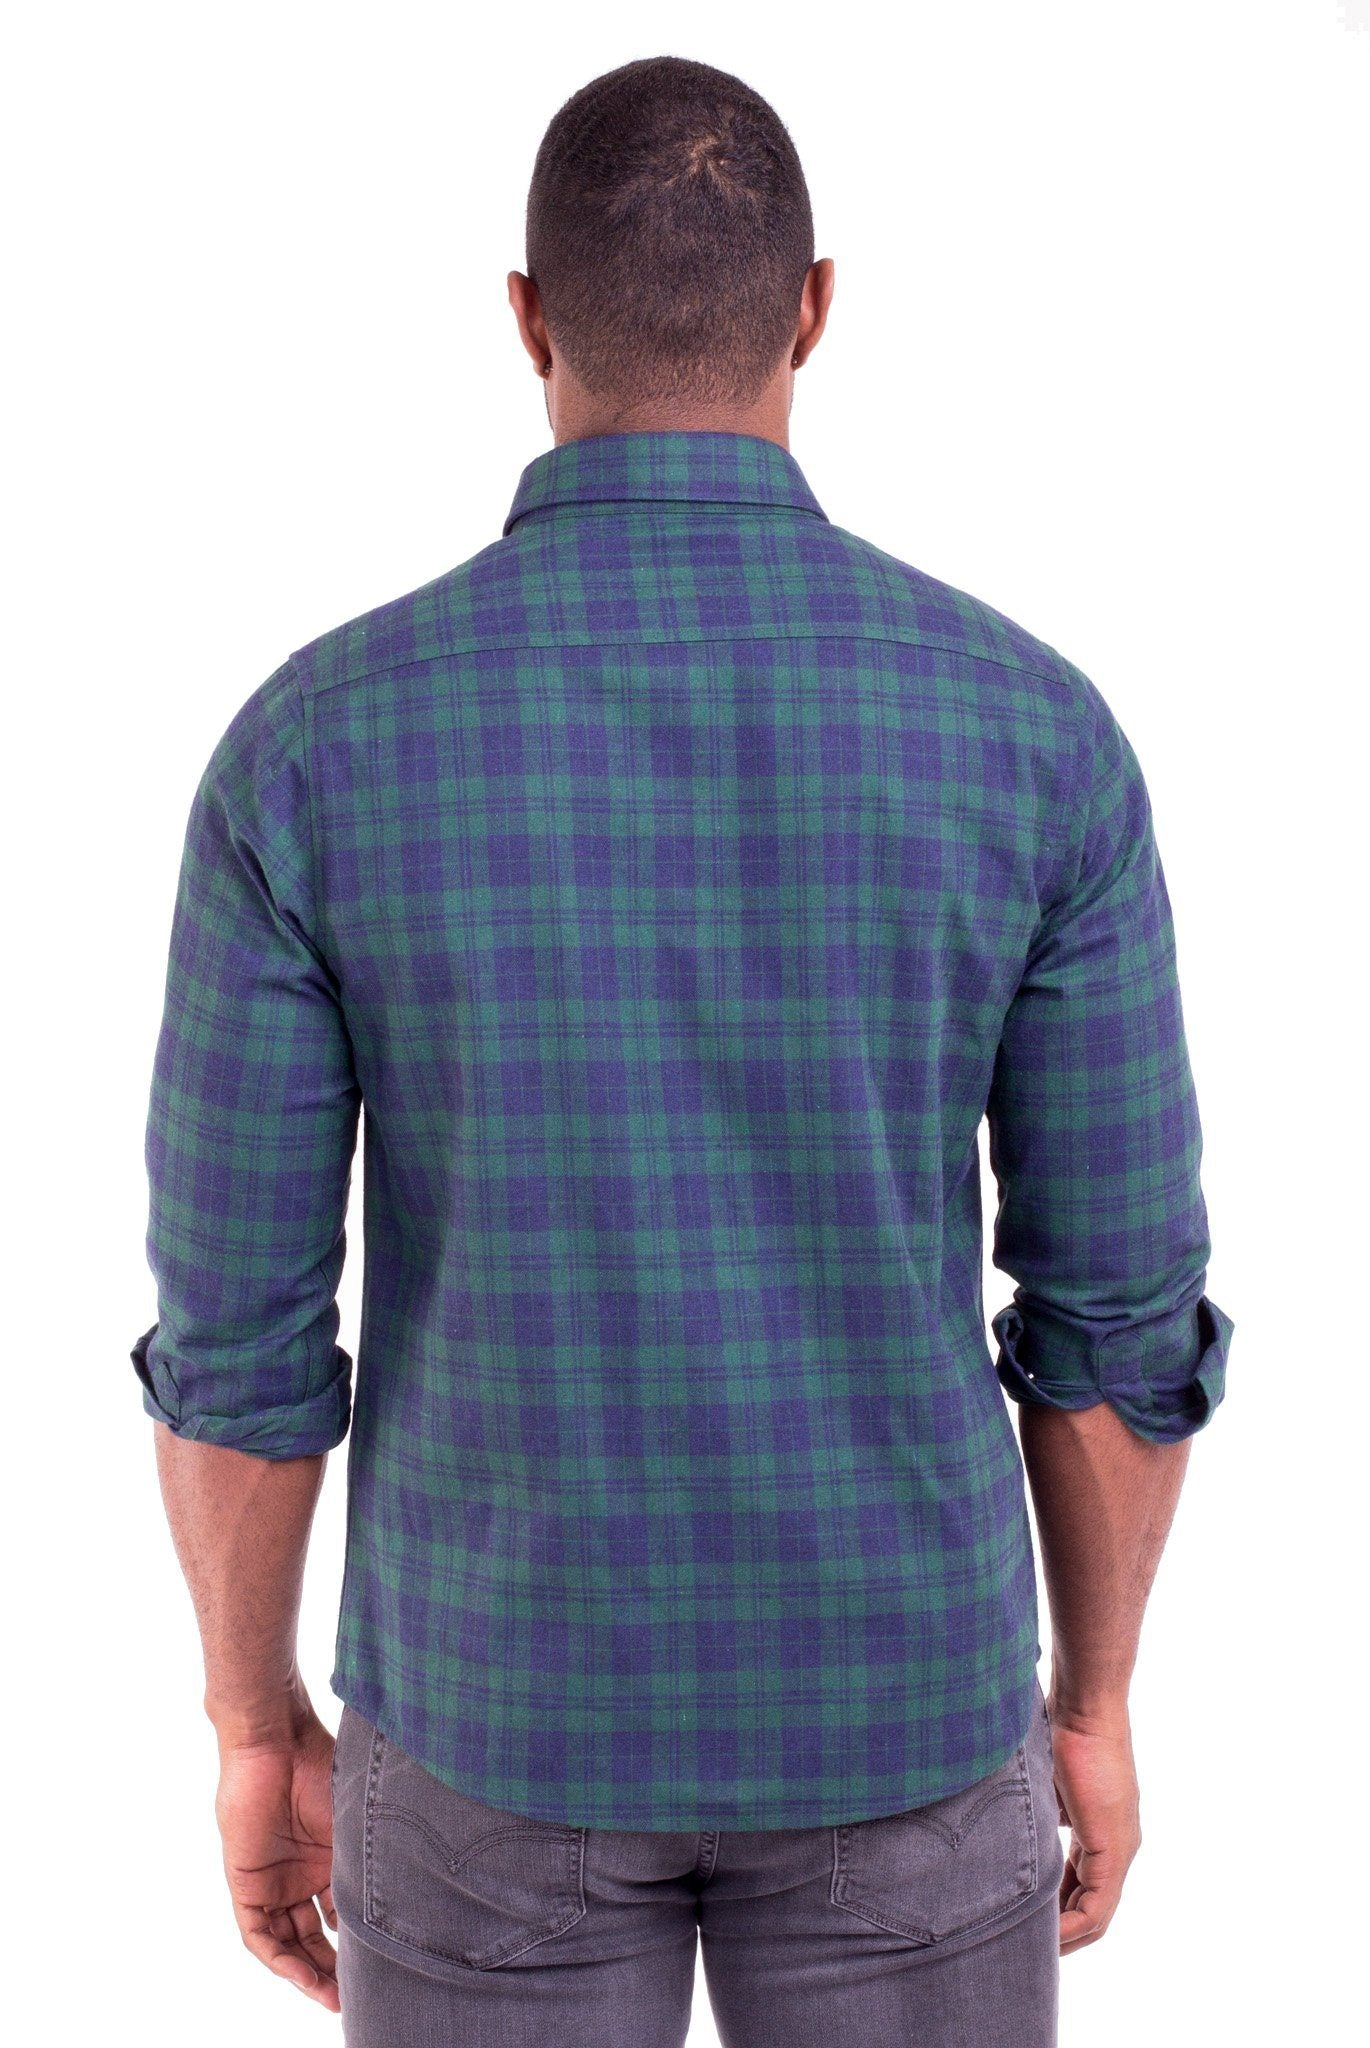 """JOHNNY"" GREEN/BLUE PLAID FLANNEL SHIRT - Poor Little Rich Boy"